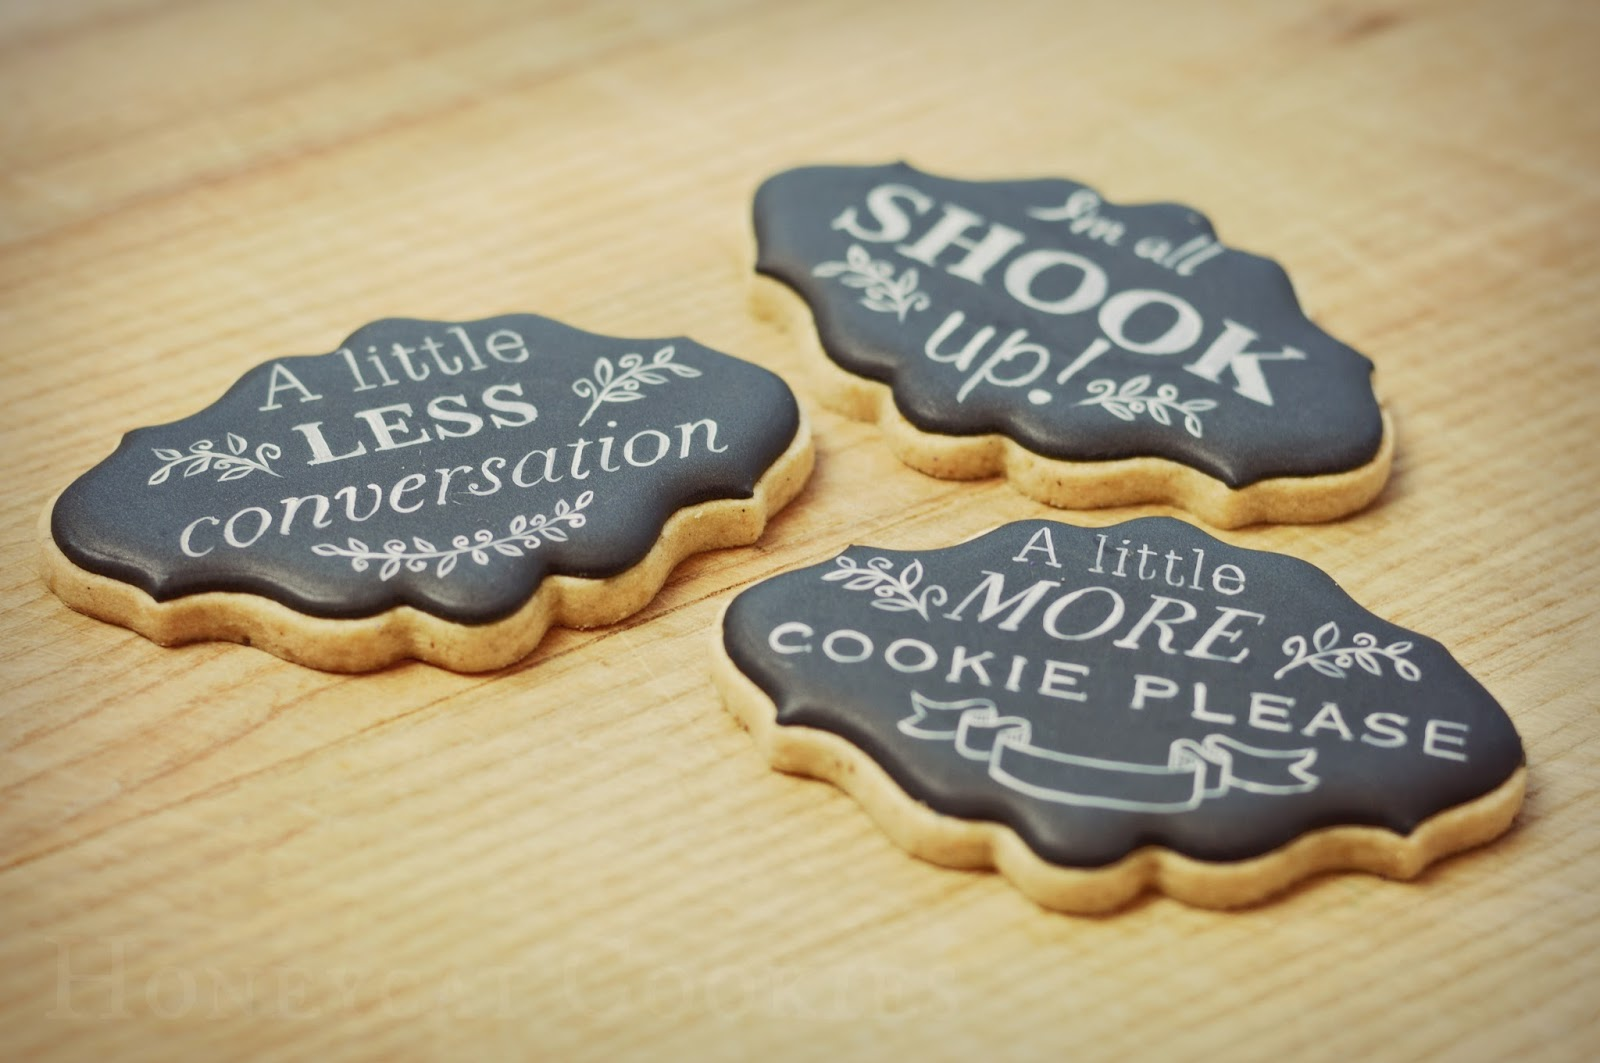 Chalkboard cookies with handpainted Elvis quotations by Honeycat Cookies.